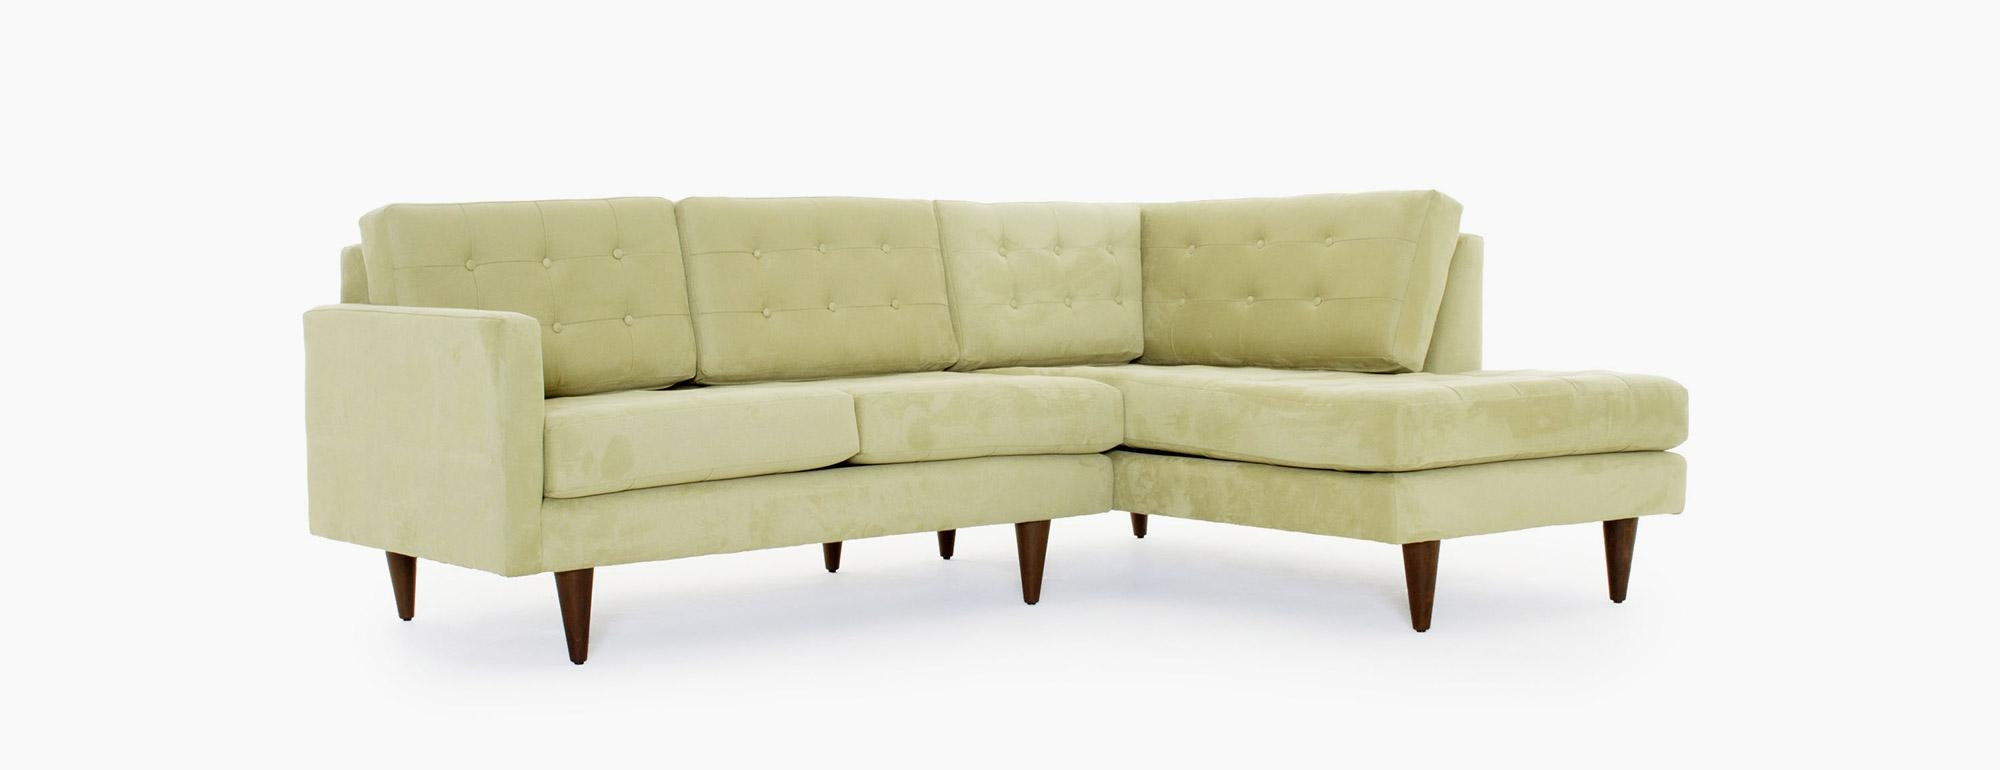 Eliot Apartment Sectional With Bumper | Joybird Intended For Apartment Sectional (Image 11 of 15)